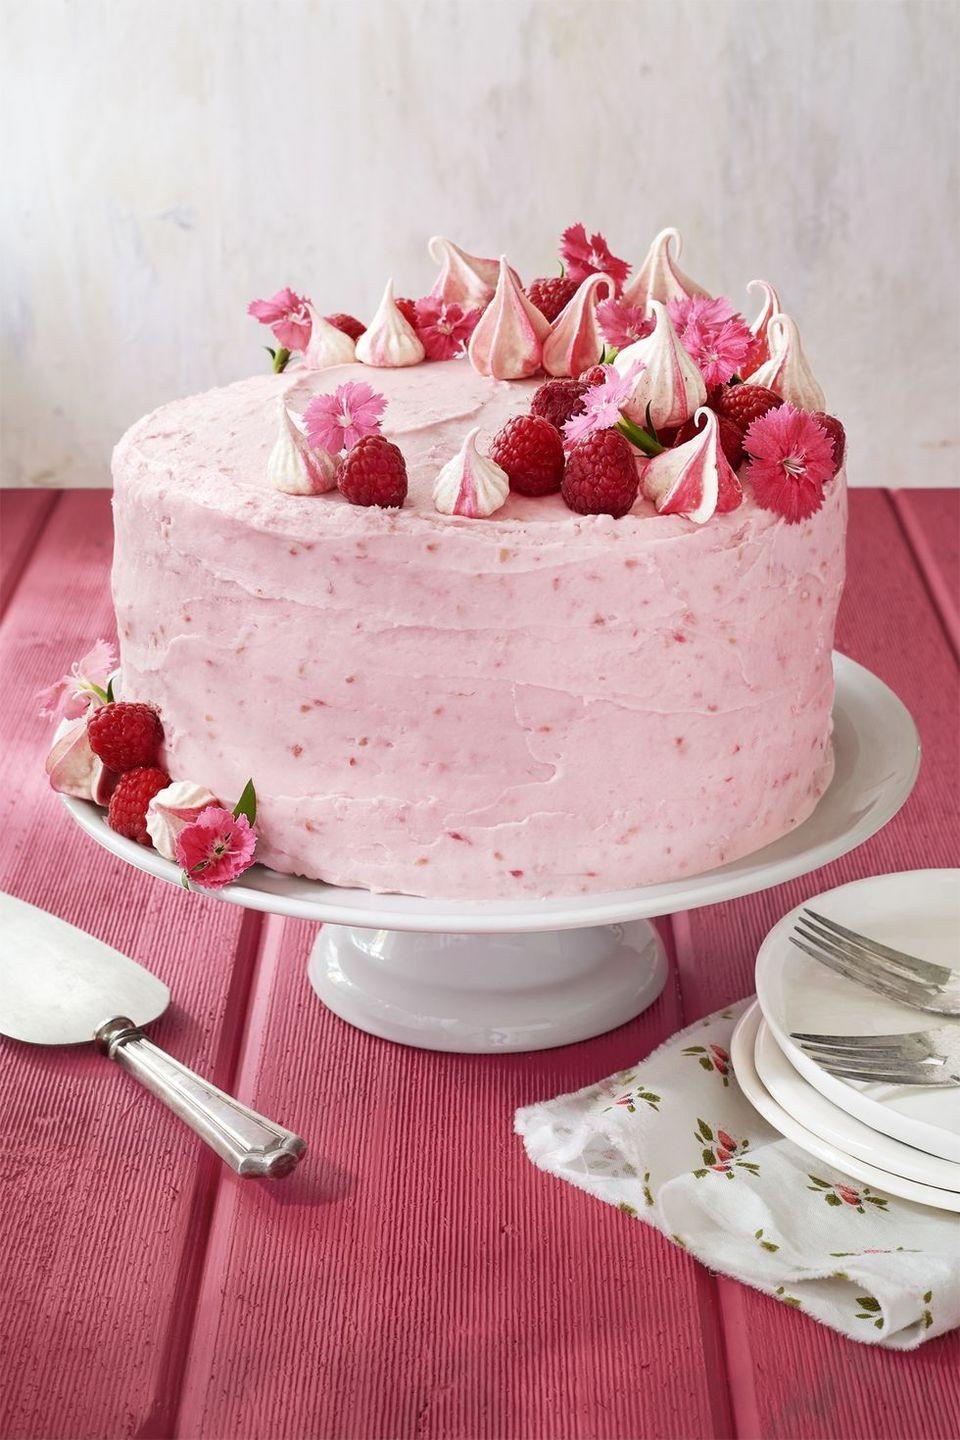 """<p>Pretty in pink and full of fruity flavor, this red velvet cake with raspberry cream cheese frosting has Mom's name written all over it. </p><p><em><a href=""""https://www.countryliving.com/food-drinks/recipes/a41986/raspberry-pink-velvet-cake-recipe/"""" rel=""""nofollow noopener"""" target=""""_blank"""" data-ylk=""""slk:Get the recipe from Country Living »"""" class=""""link rapid-noclick-resp"""">Get the recipe from Country Living »</a></em><br></p>"""